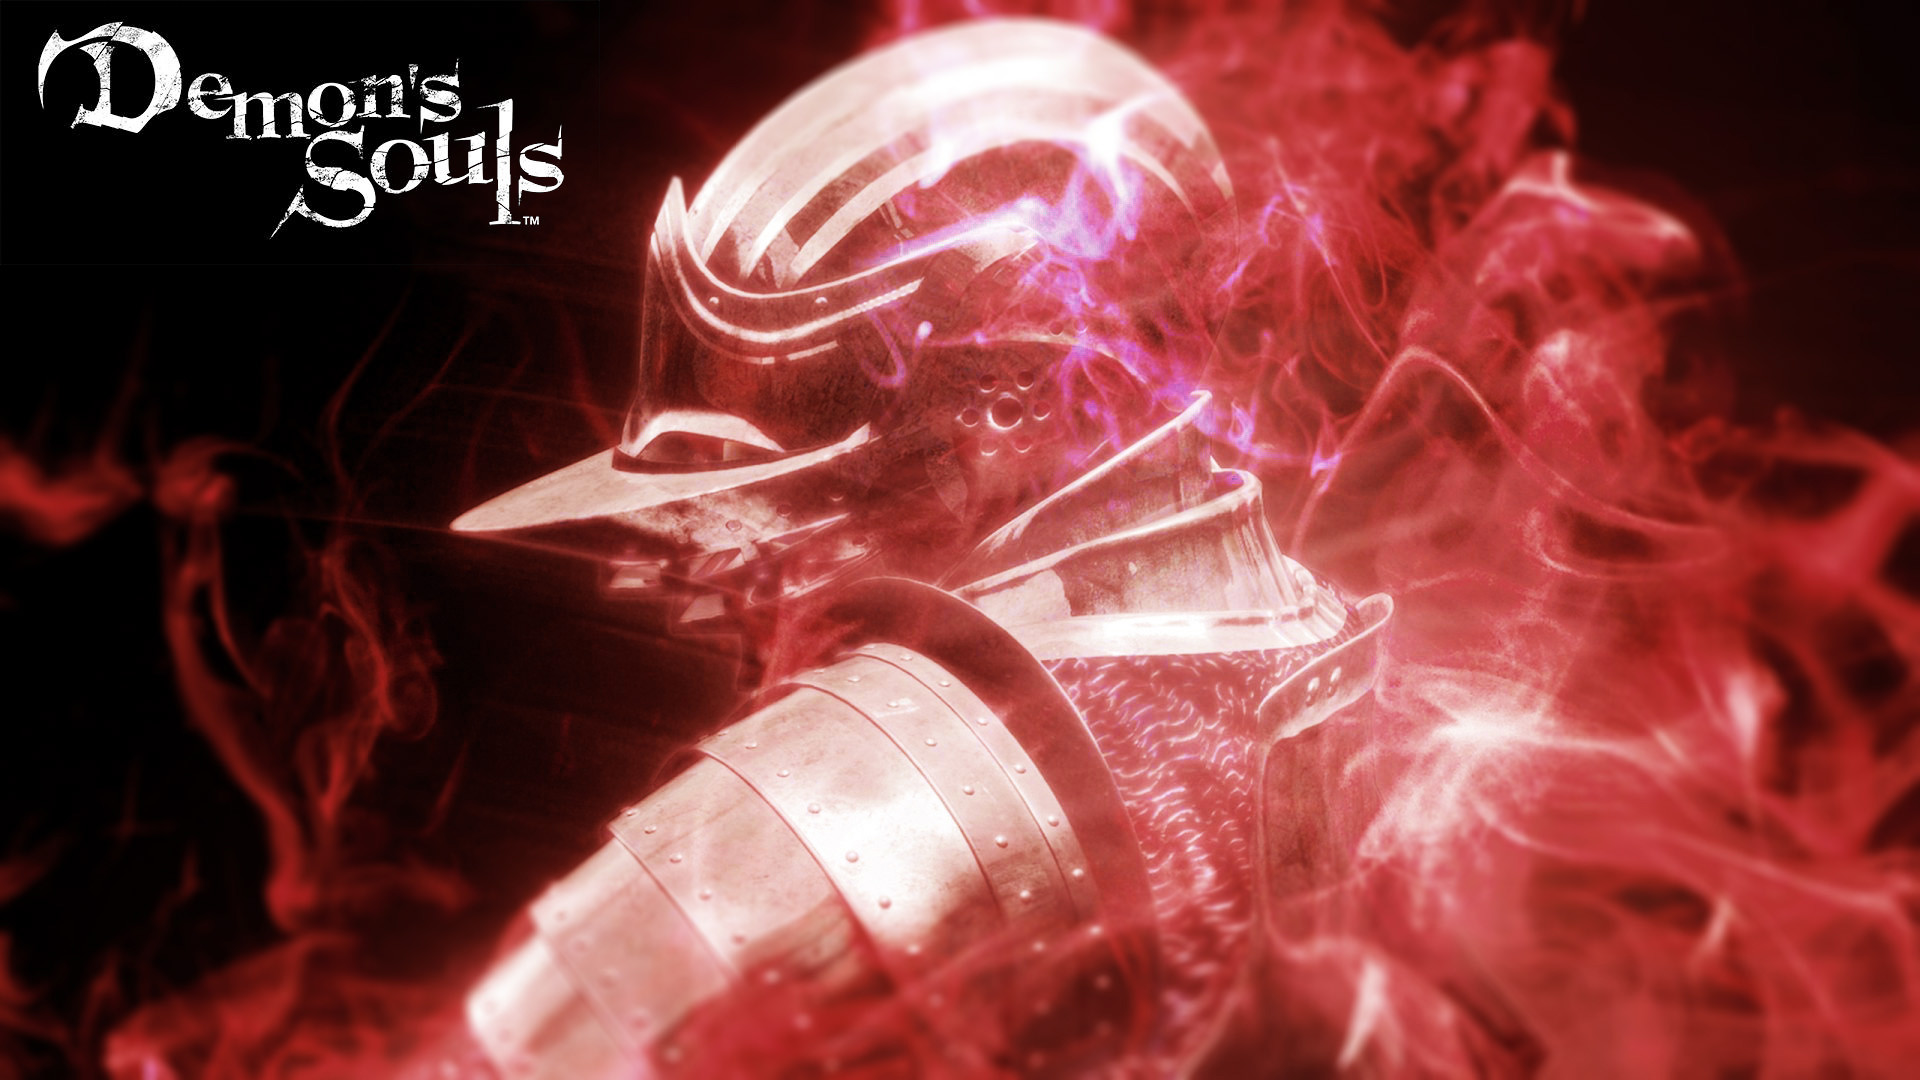 Res: 1920x1080, Demon's Souls Black Phantom wallpaper by DragonCrestPC Demon's Souls Black  Phantom wallpaper by DragonCrestPC